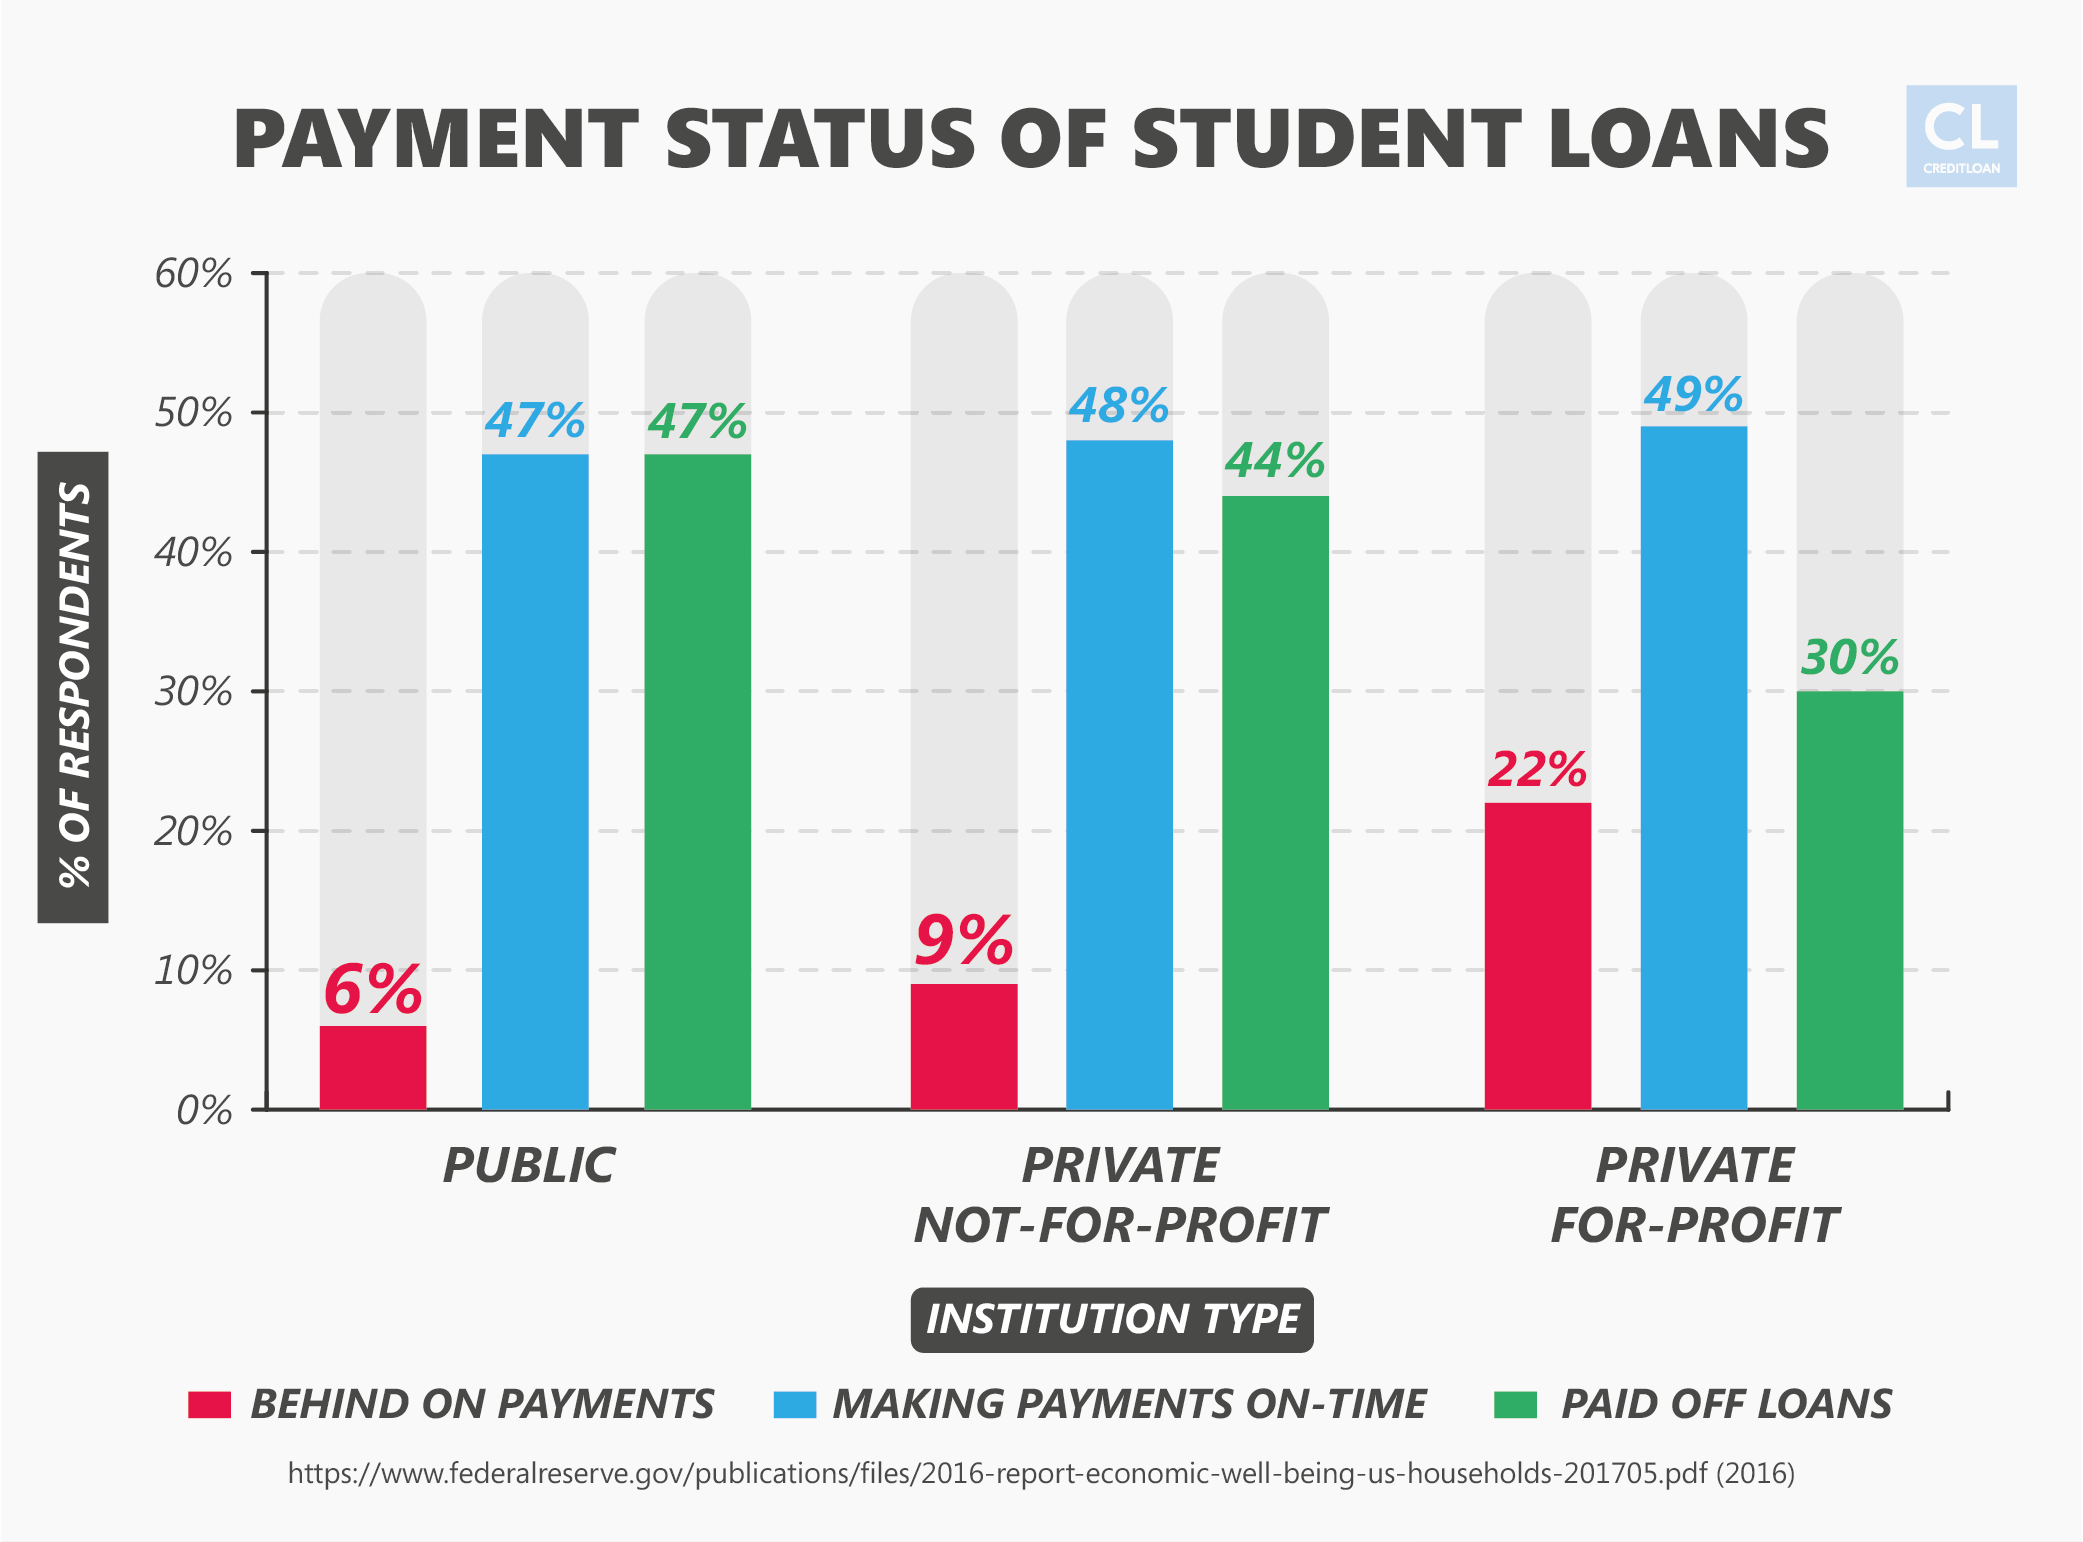 Payment Status of Student Loans